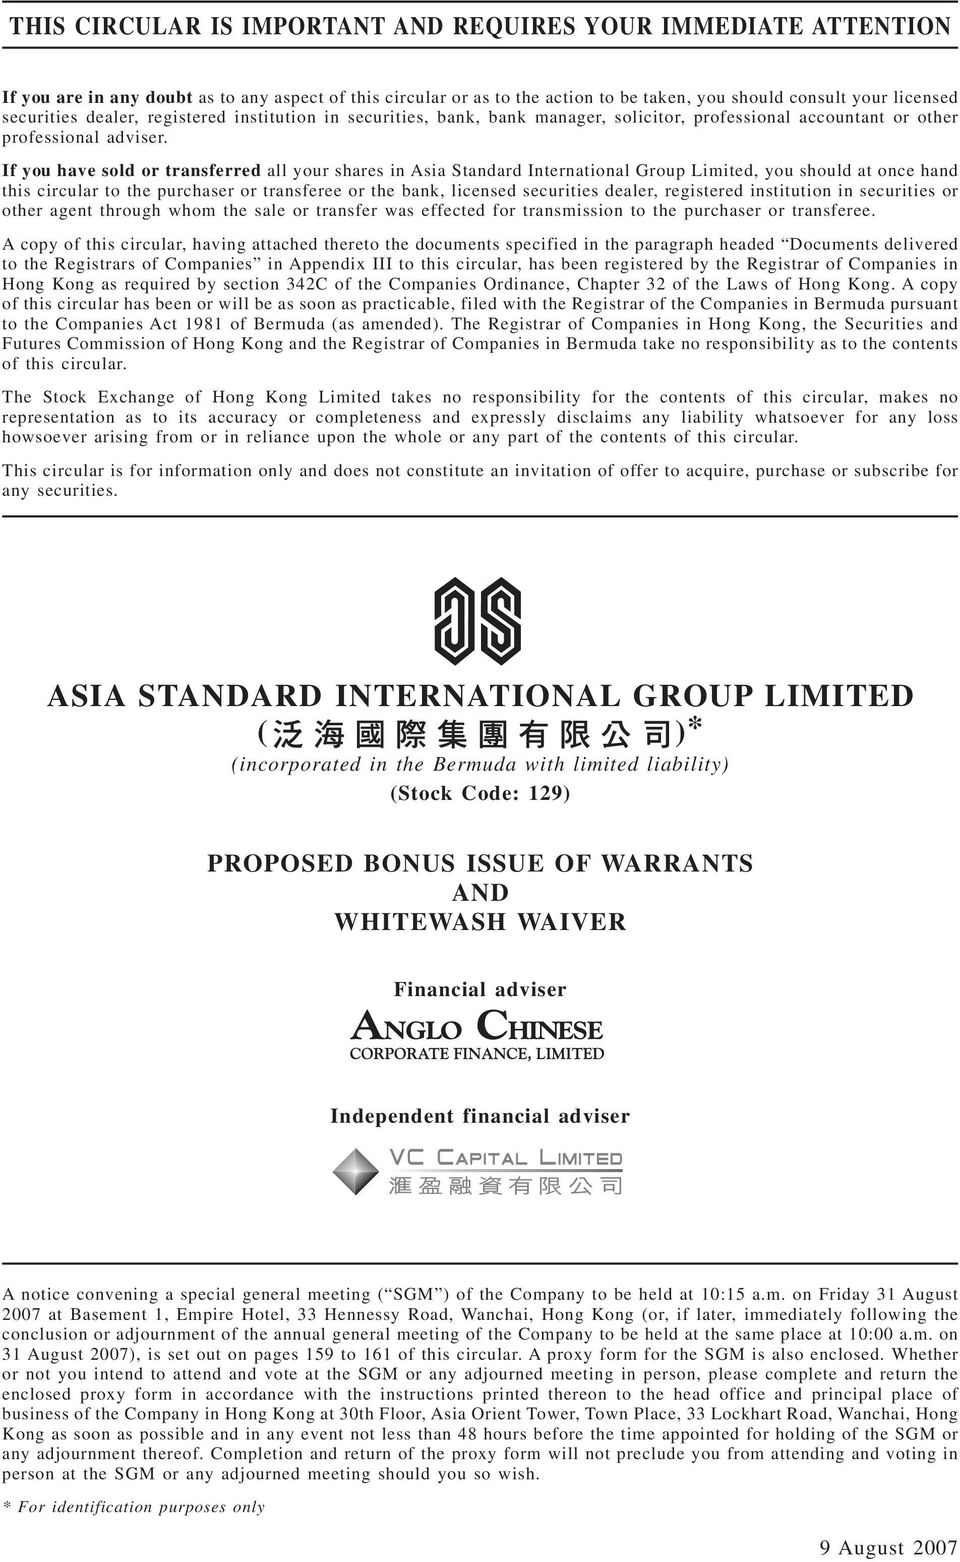 If you have sold or transferred all your shares in Asia Standard International Group Limited, you should at once hand this circular to the purchaser or transferee or the bank, licensed securities